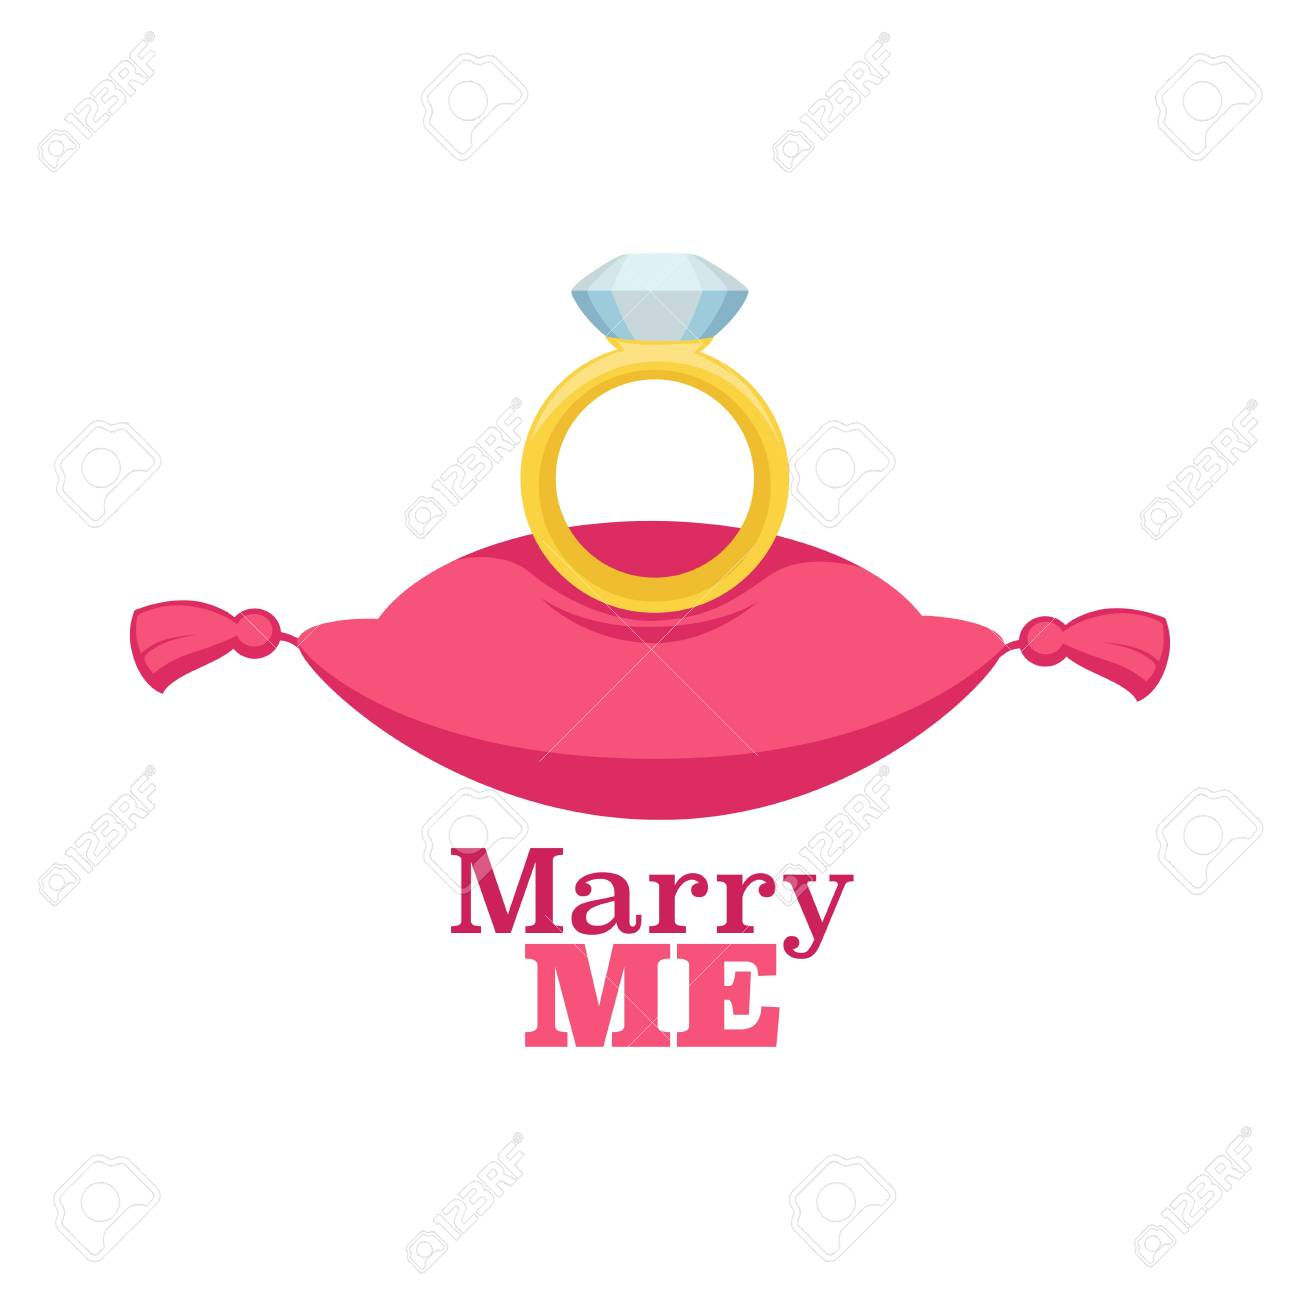 Marry me poster with ring and cushion proposal isolated icon